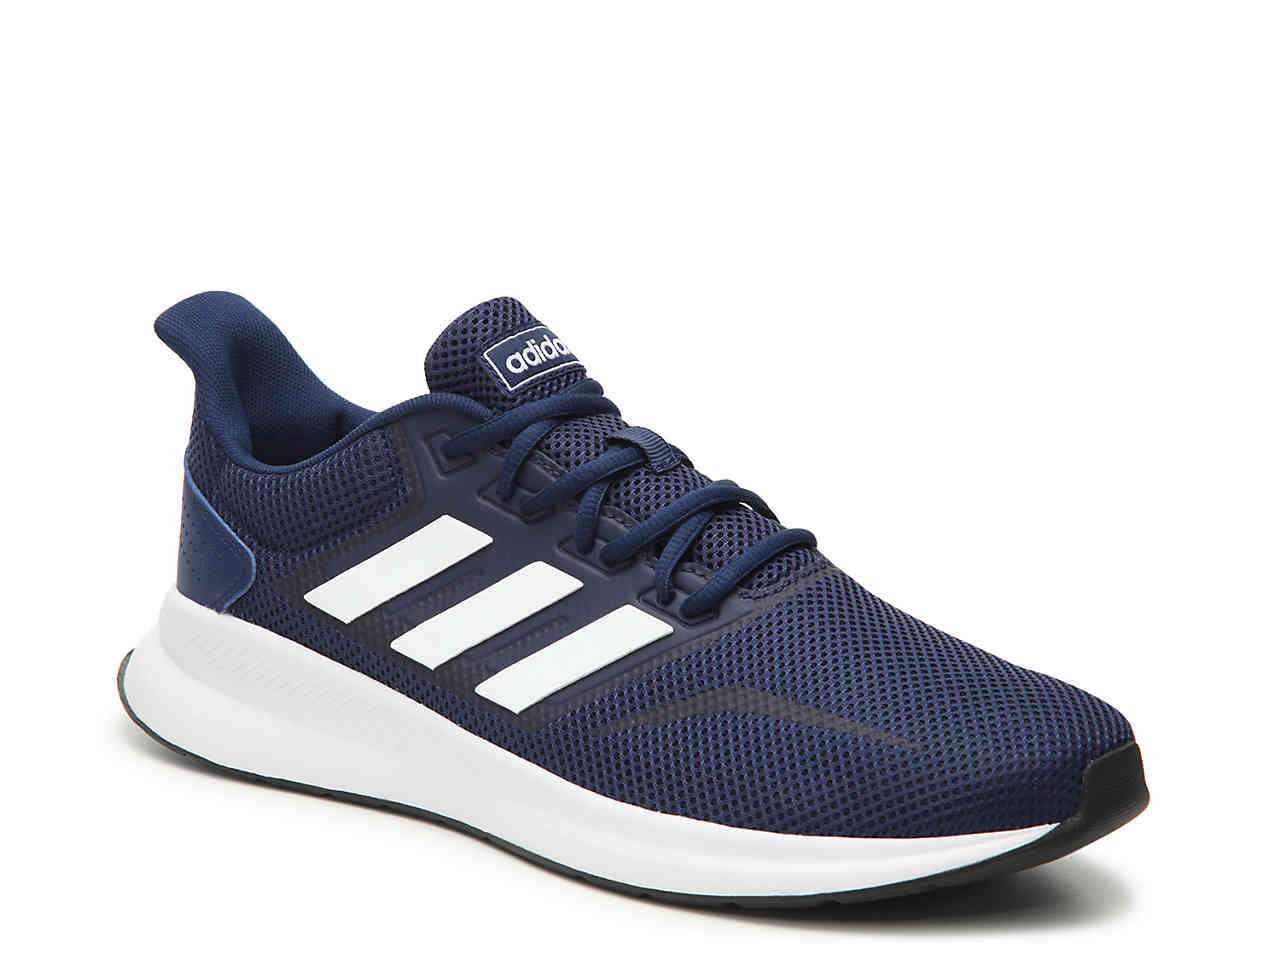 adidas Tennis Shoes for Men & Women | RacquetGuys